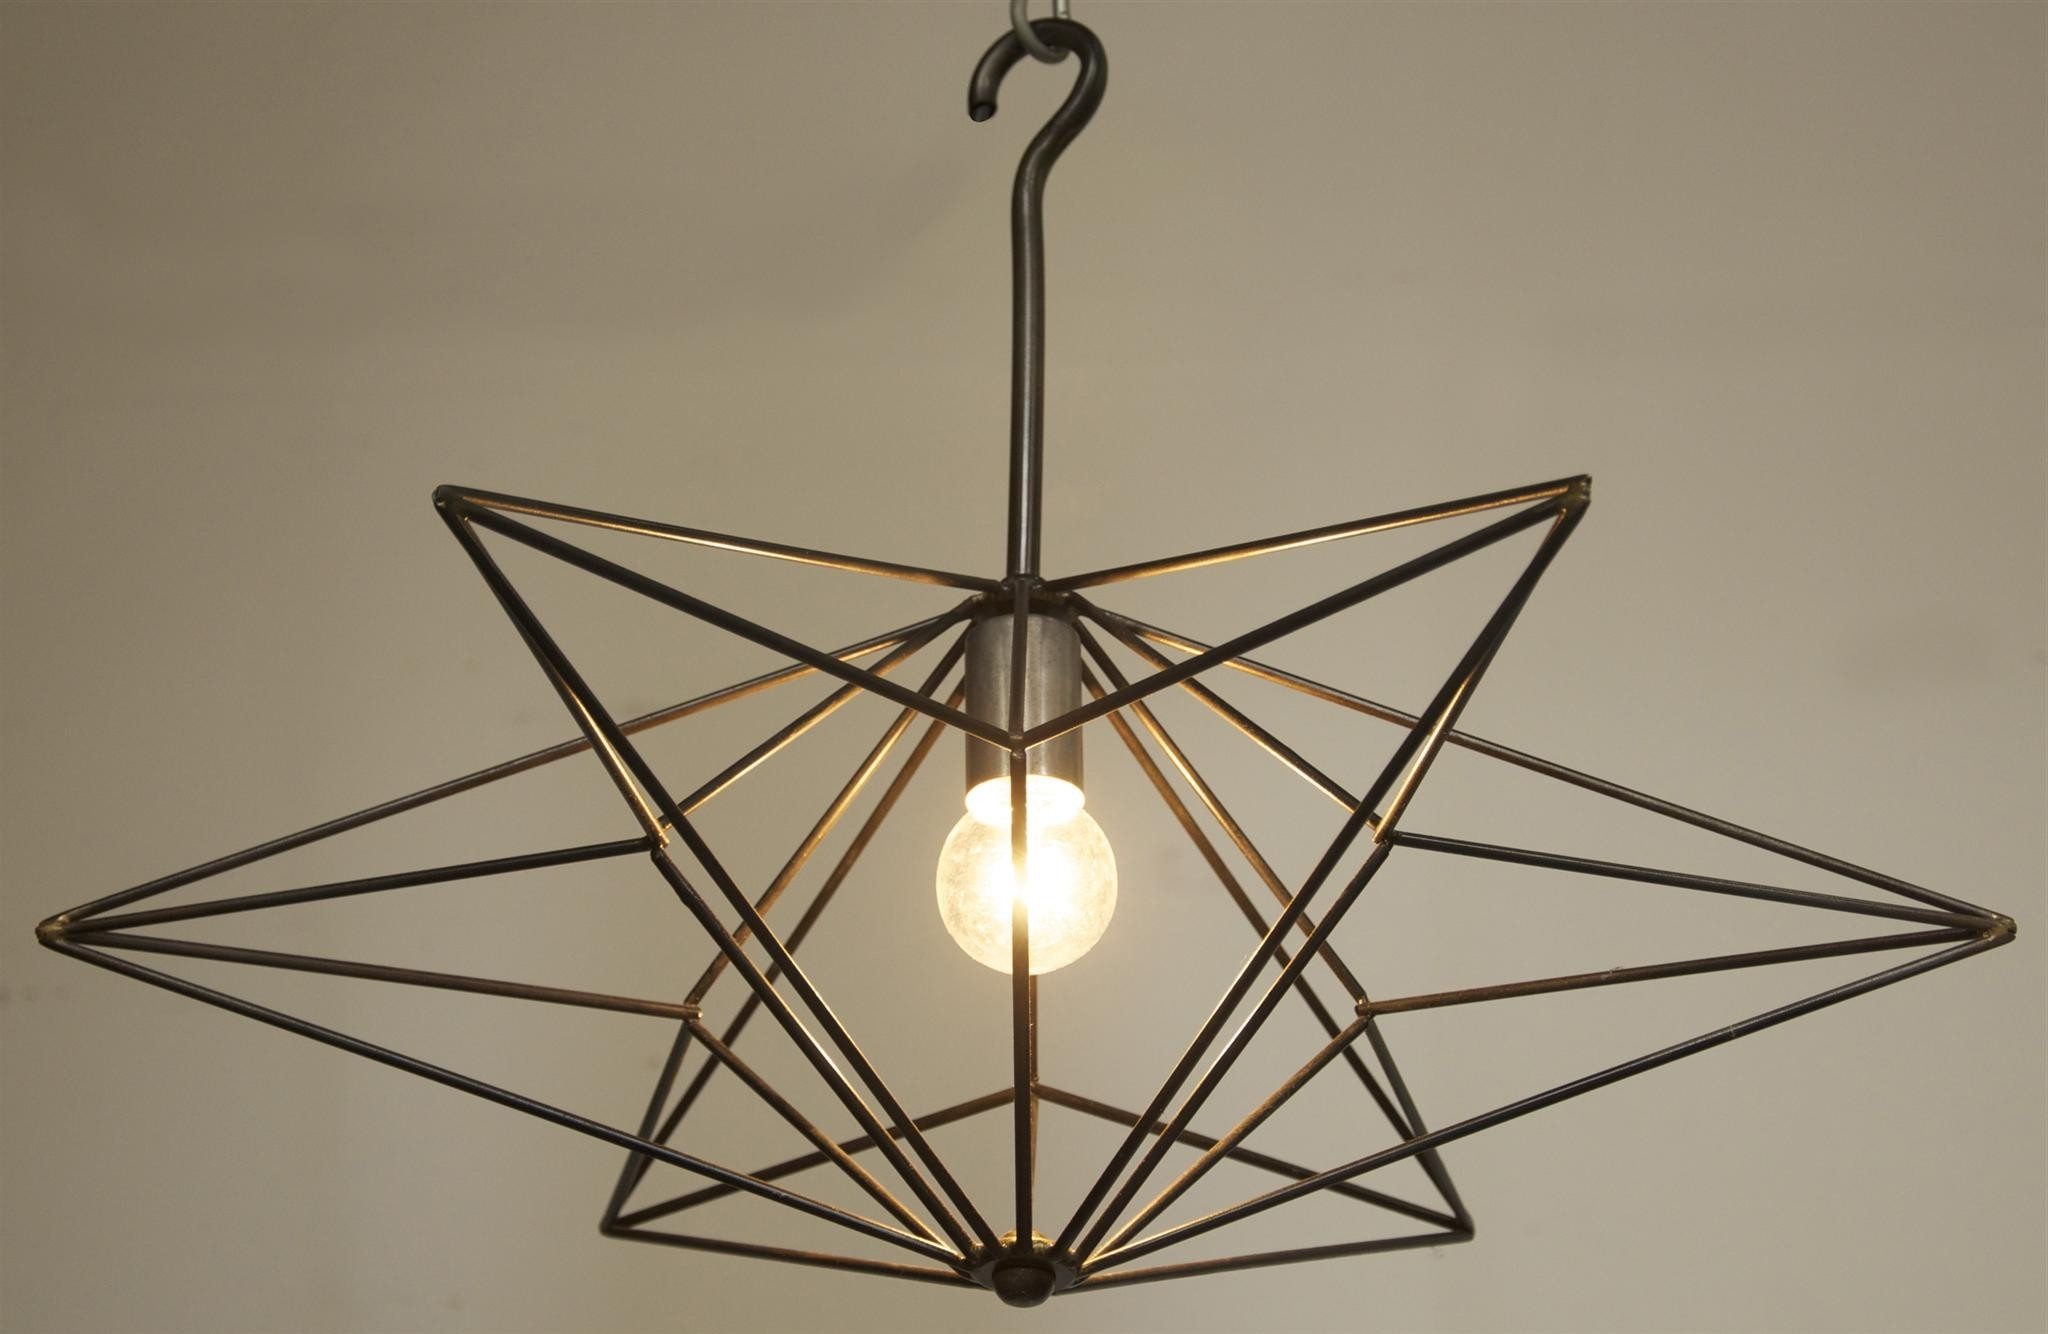 Outdoor Hanging Star Lights In Fashionable Pendant Light Fixture Splendid Home Depot